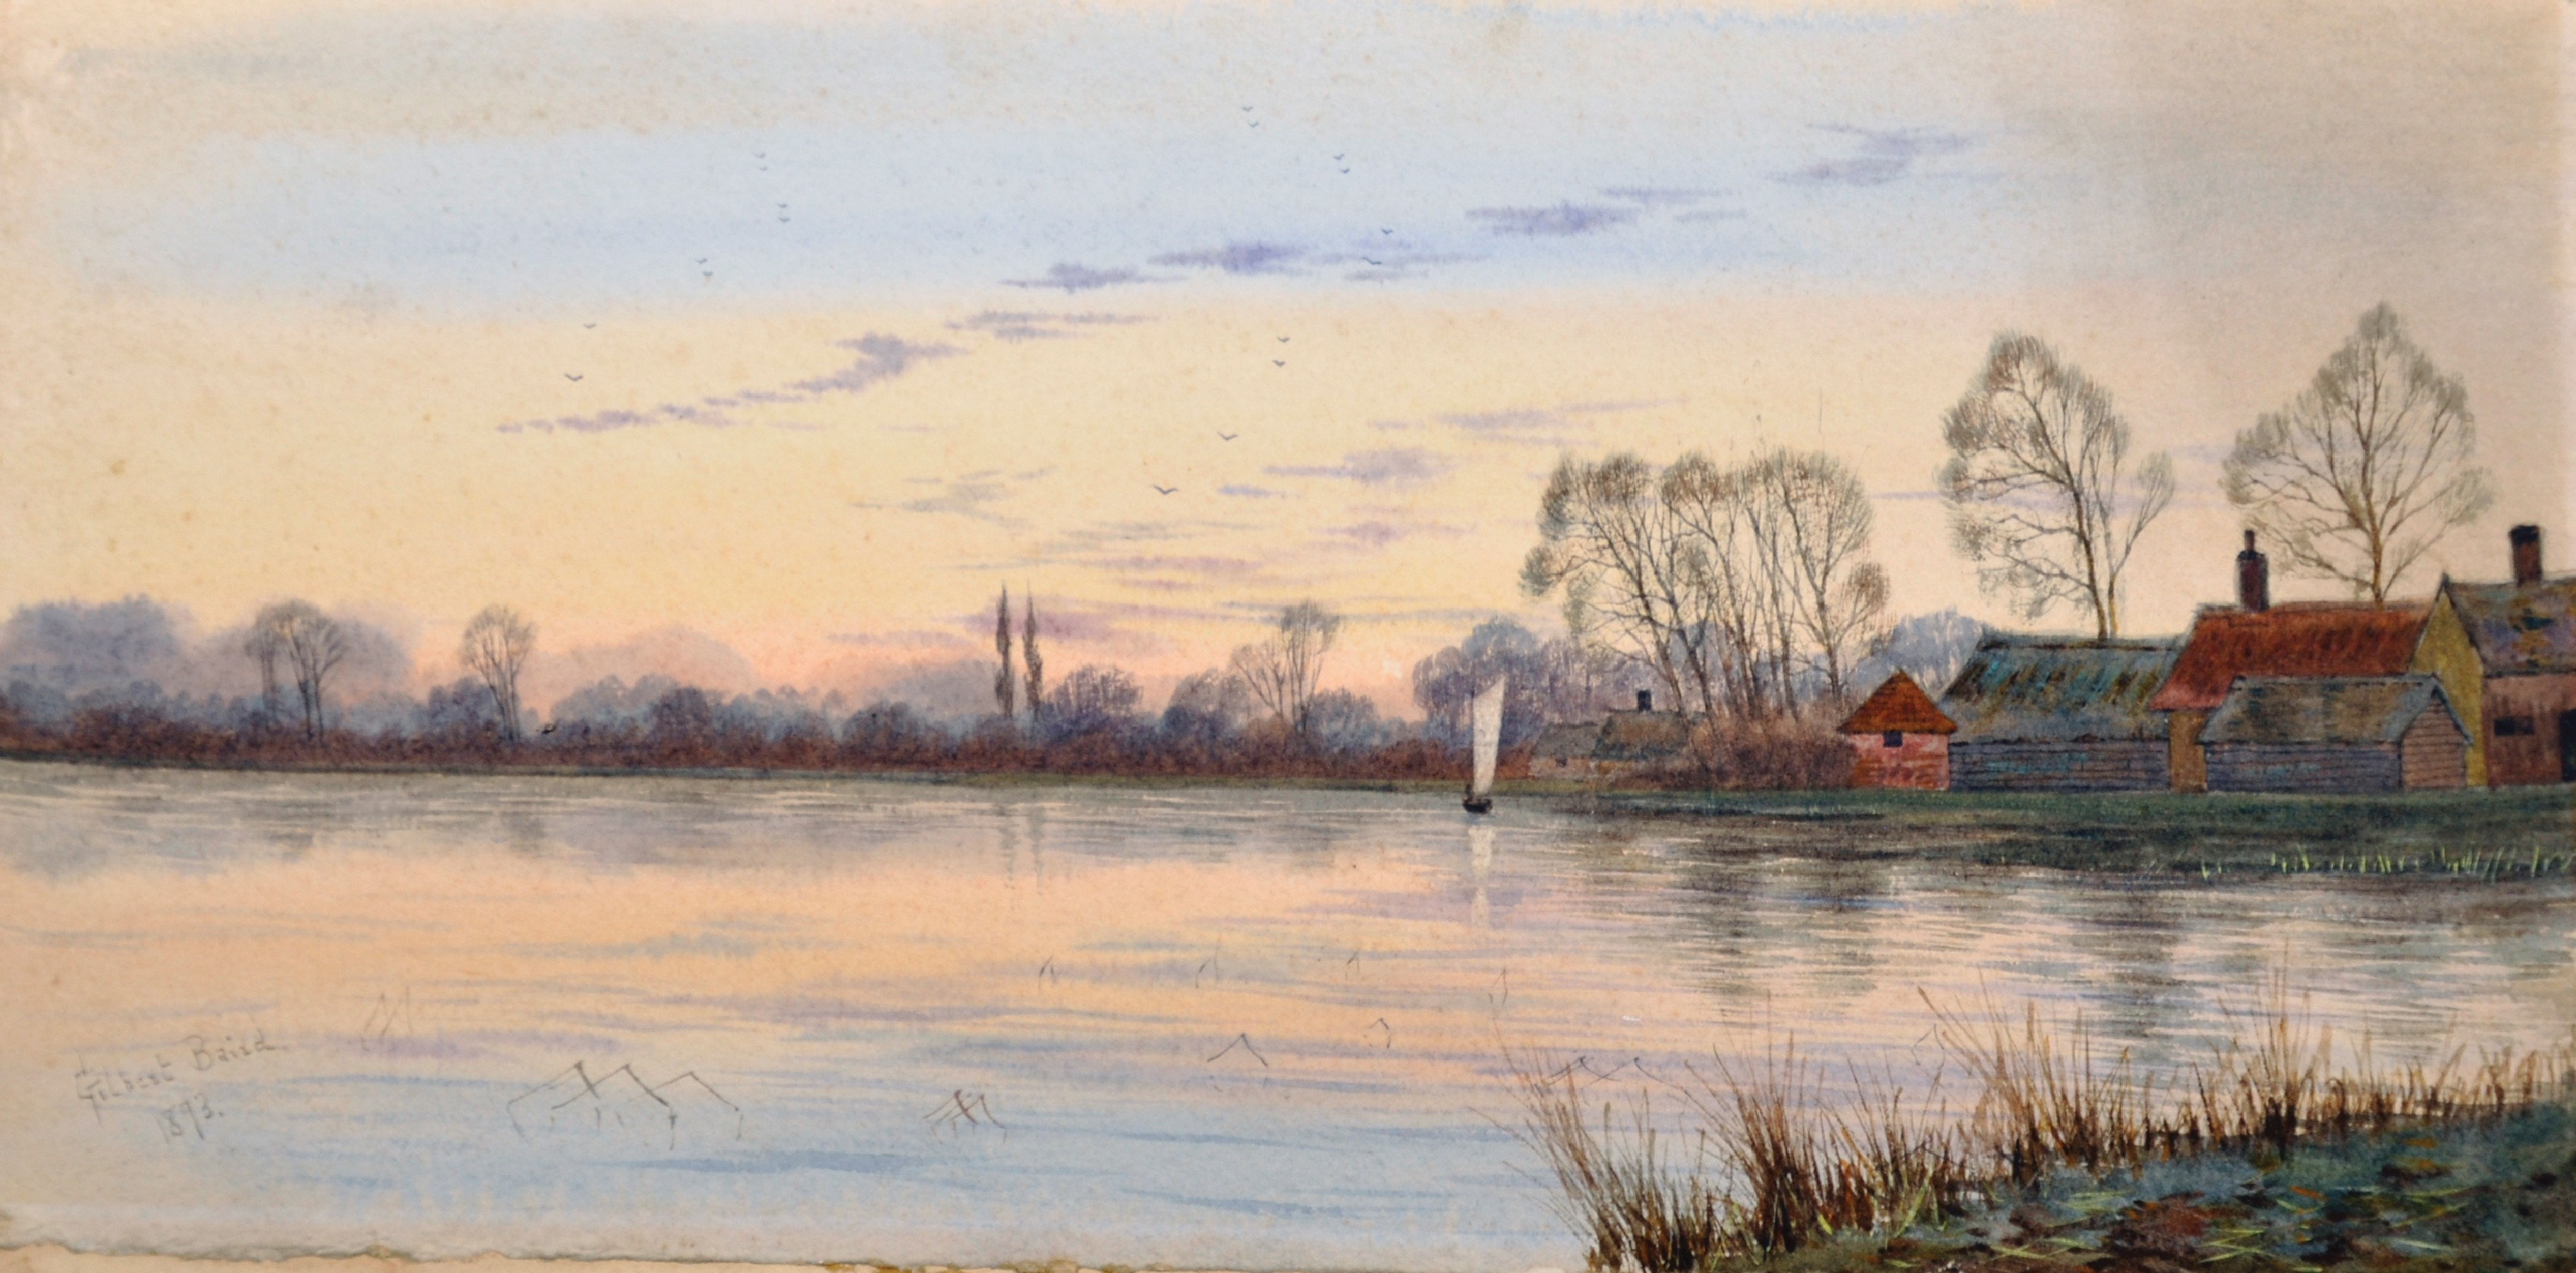 Gilbert Baird Fraser (1866-1947) British. A River Landscape, with a Sailing Boat, and Cottages in